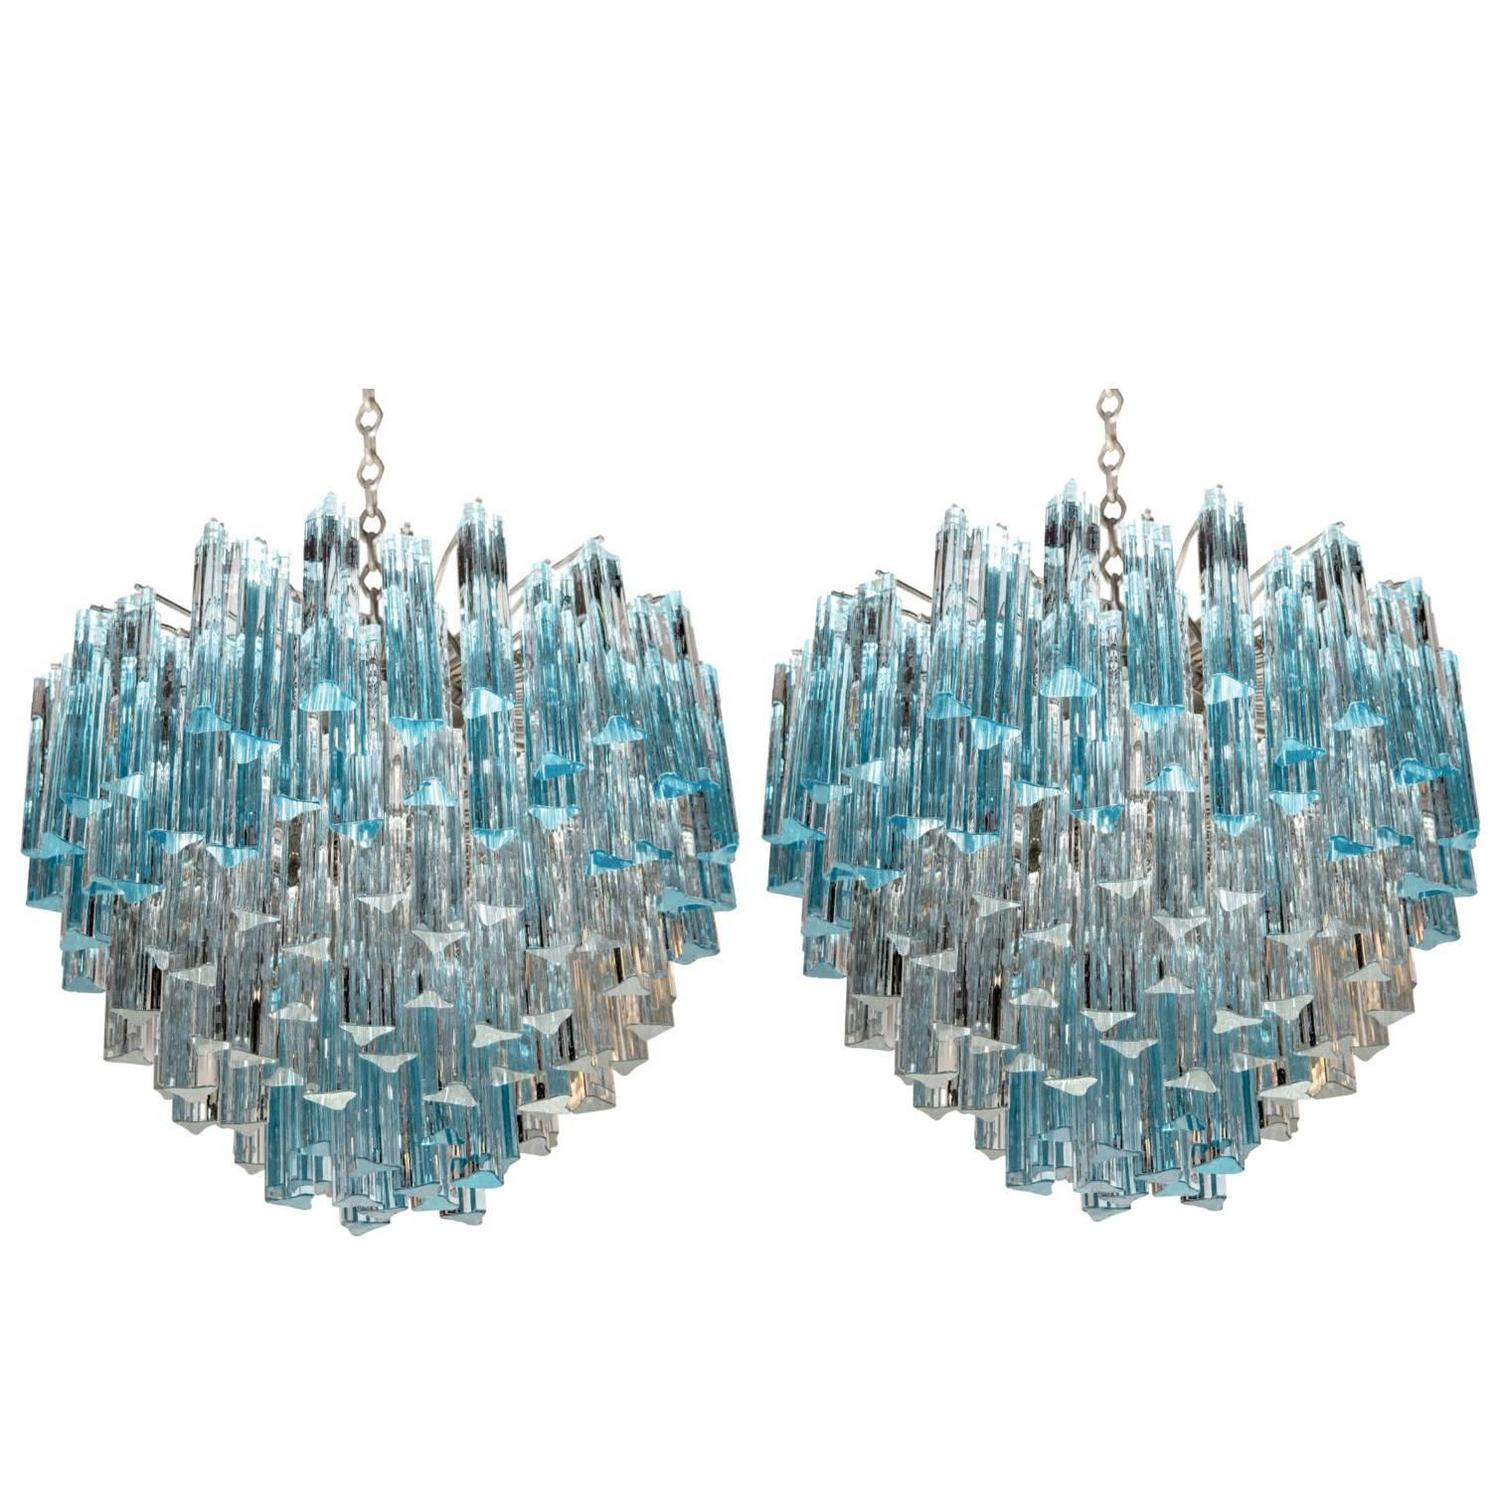 Rare and Spectacular Pair of Italian Aquamarine Chandeliers